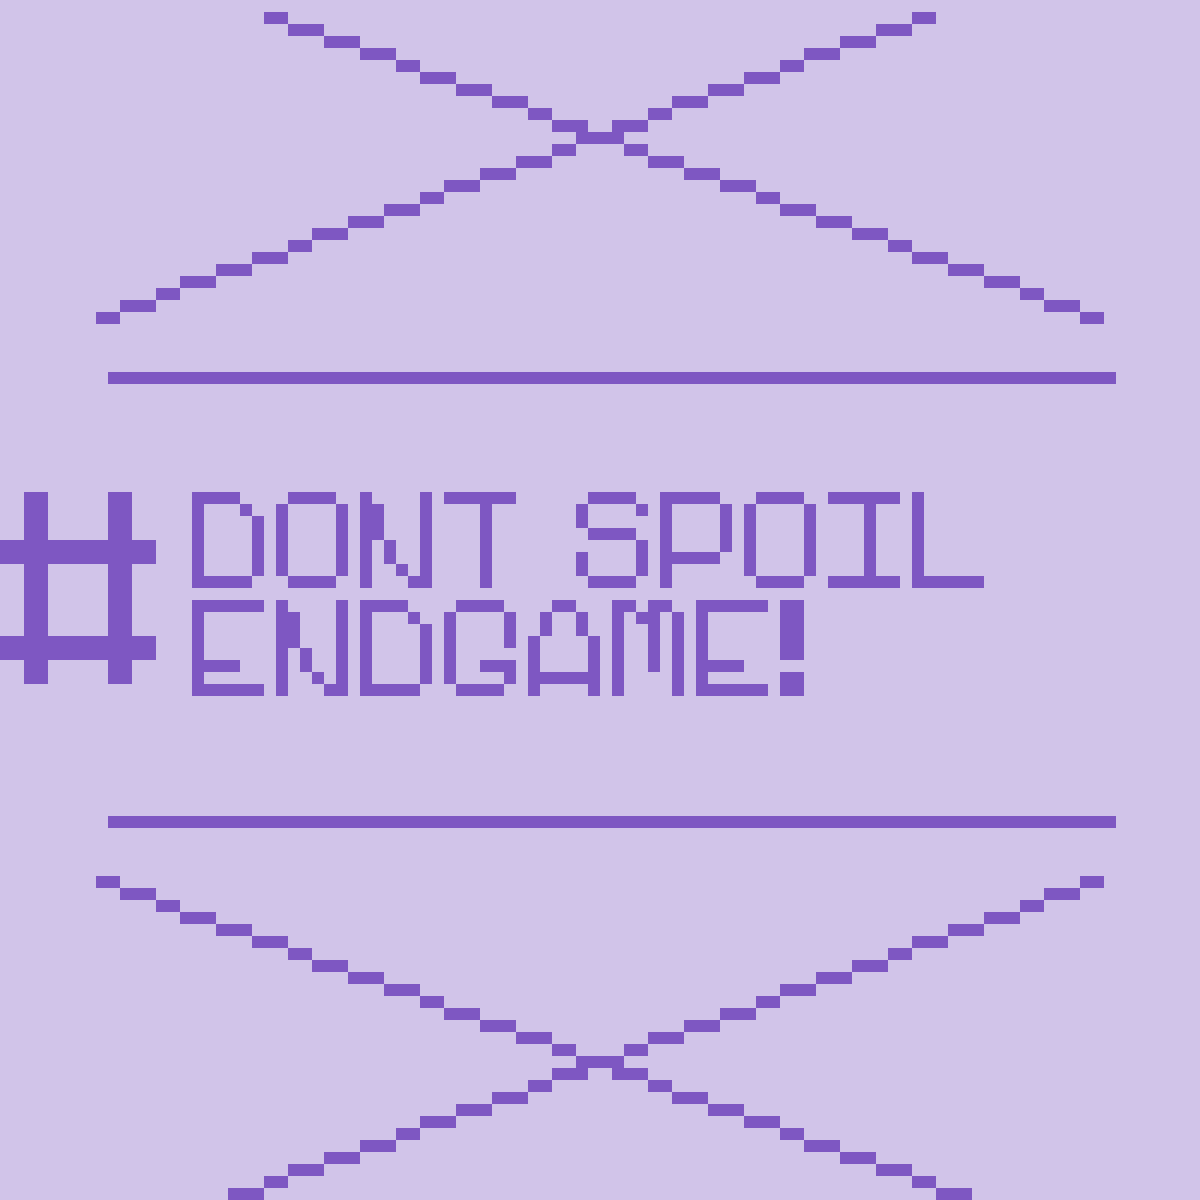 #DON'T SPOIL ENDGAME by Doggothedragon